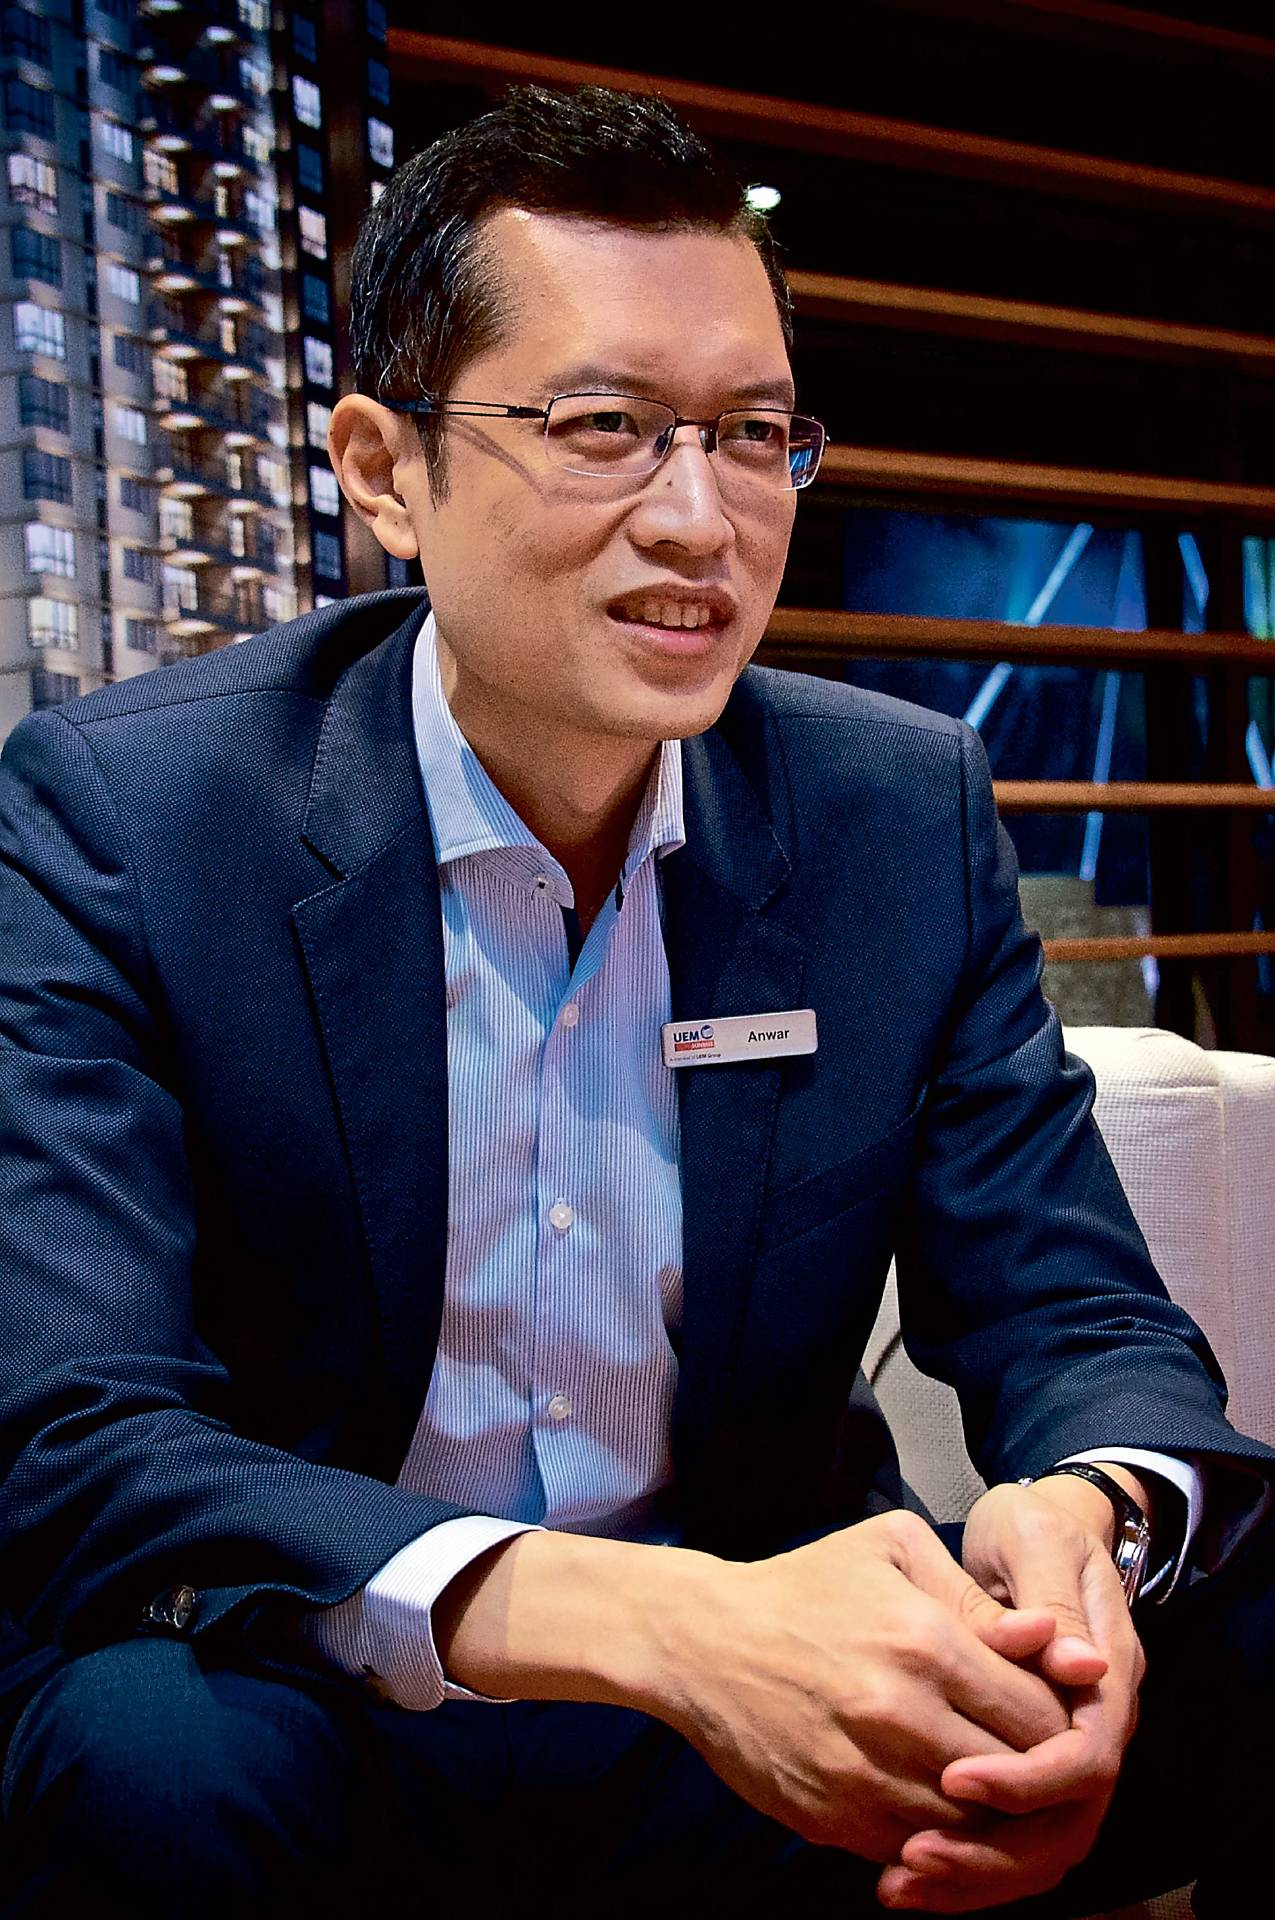 Anwar Syahrin says the company's focus is to create active urban living for everyone.